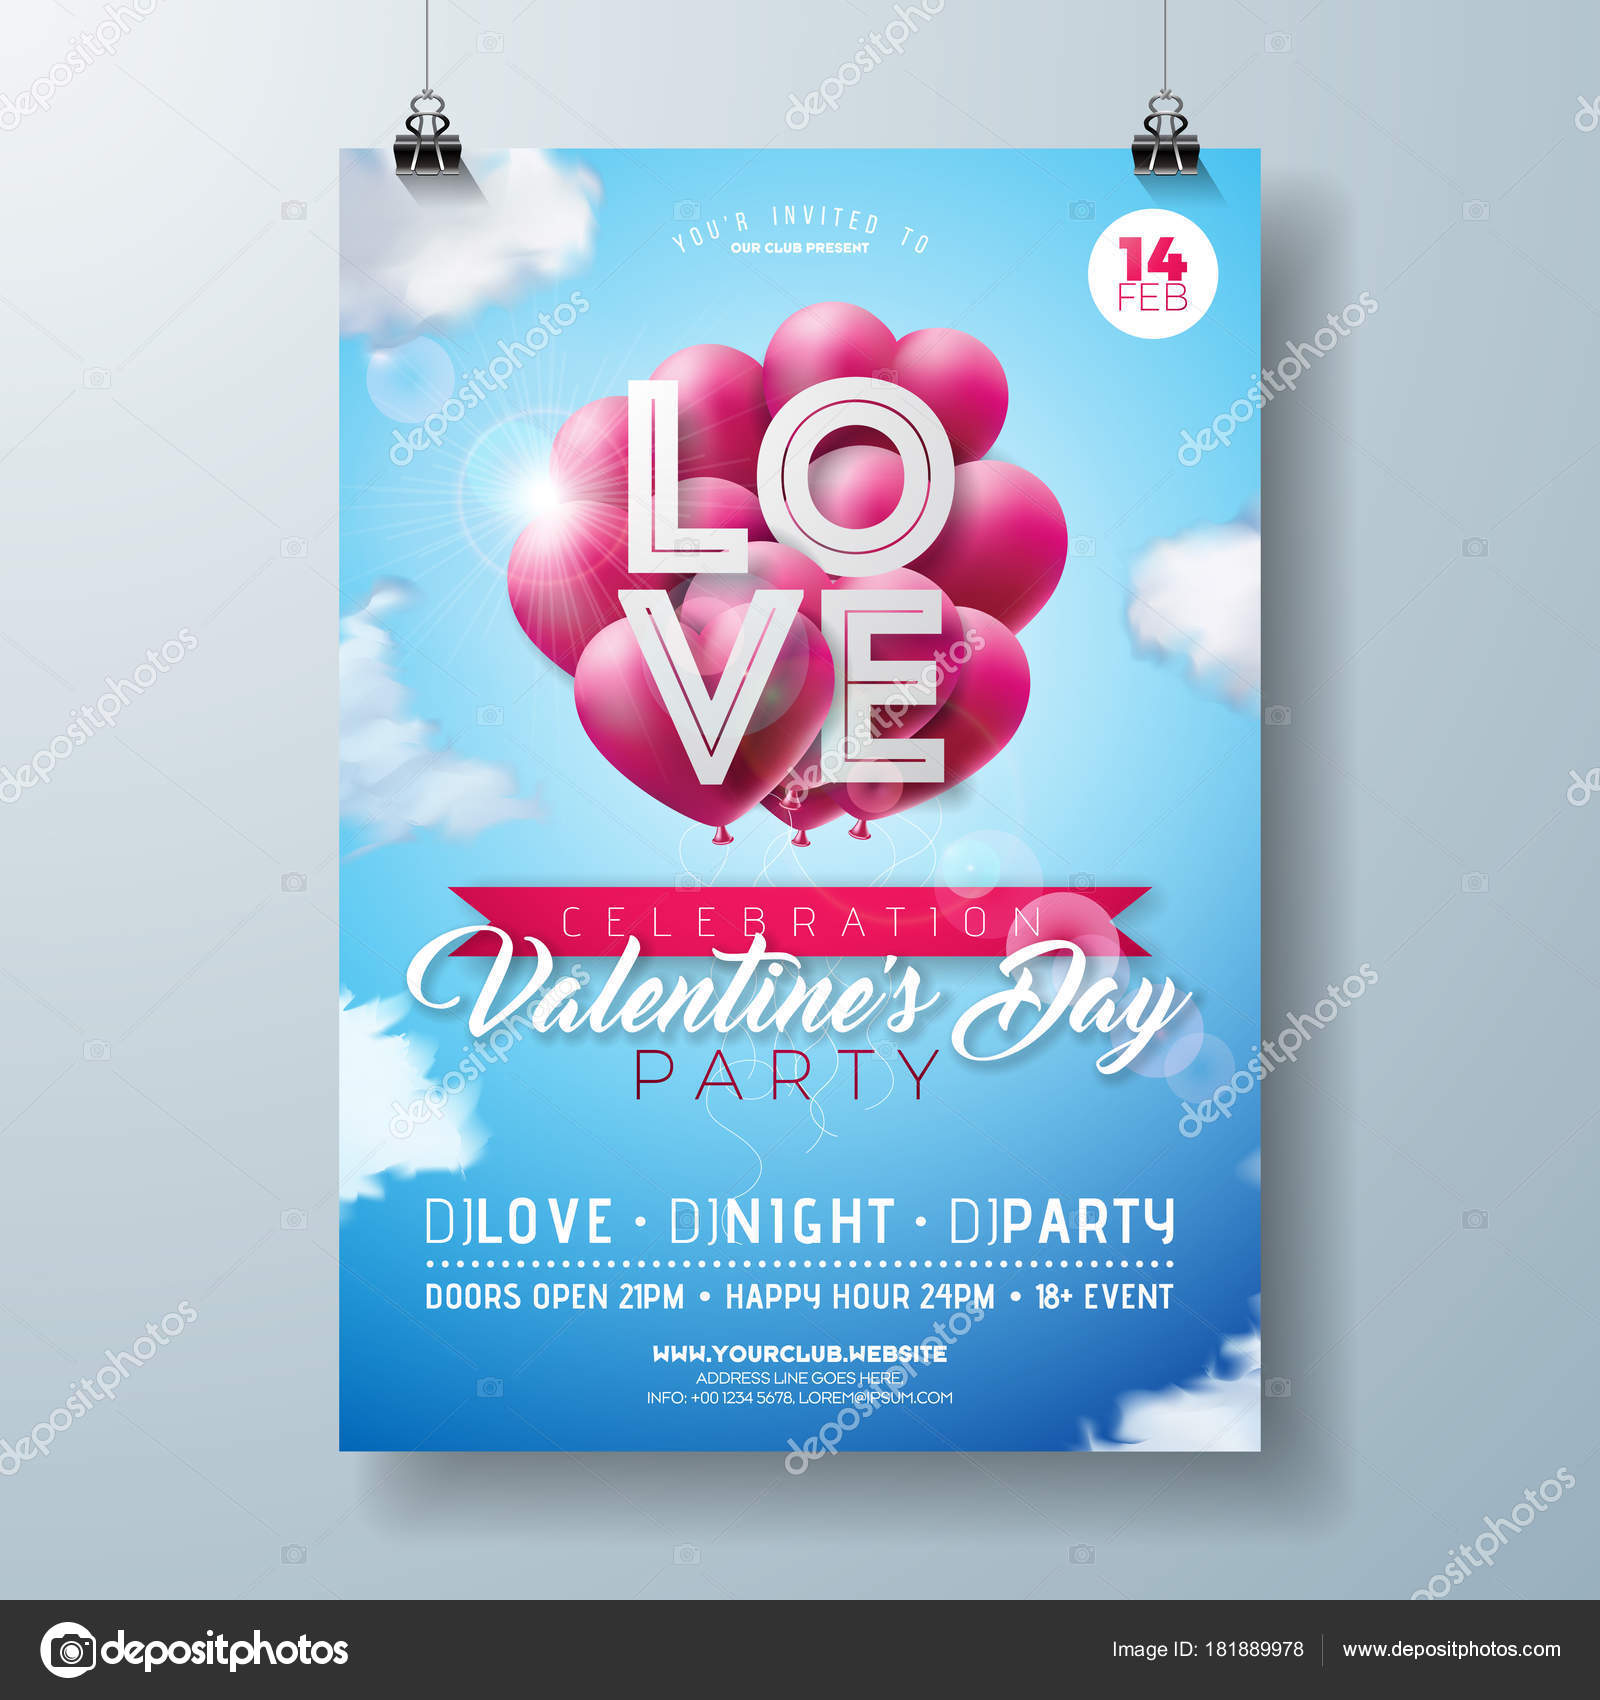 valentines day party flyer design with love typography letter and heart balloon on cloud sky background vector holiday celebration poster template for